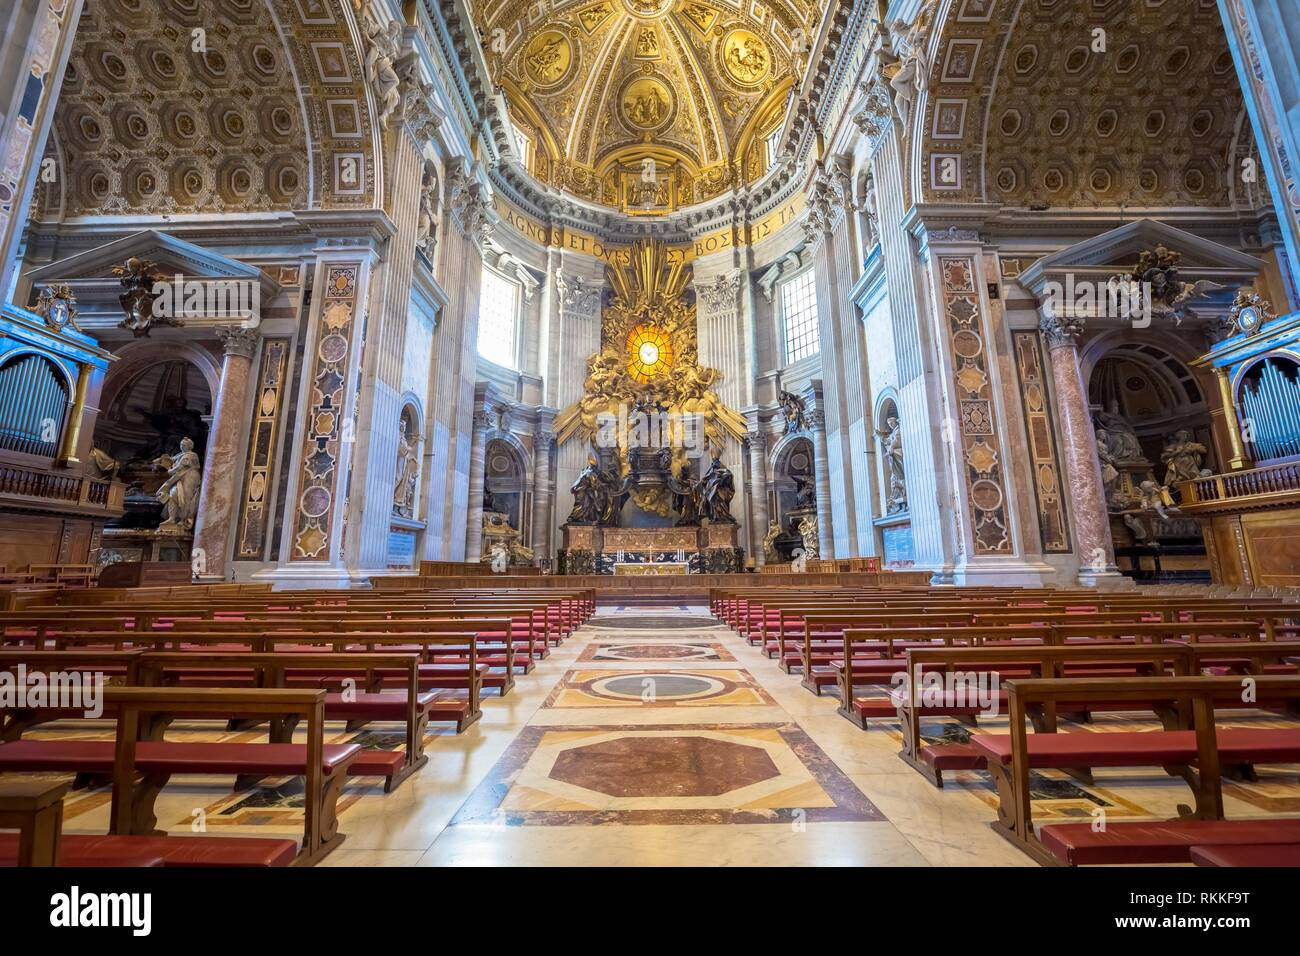 Saint Peter Basilica, Vatican State in Rome: interior with detail of cupola decorations. - Stock Image